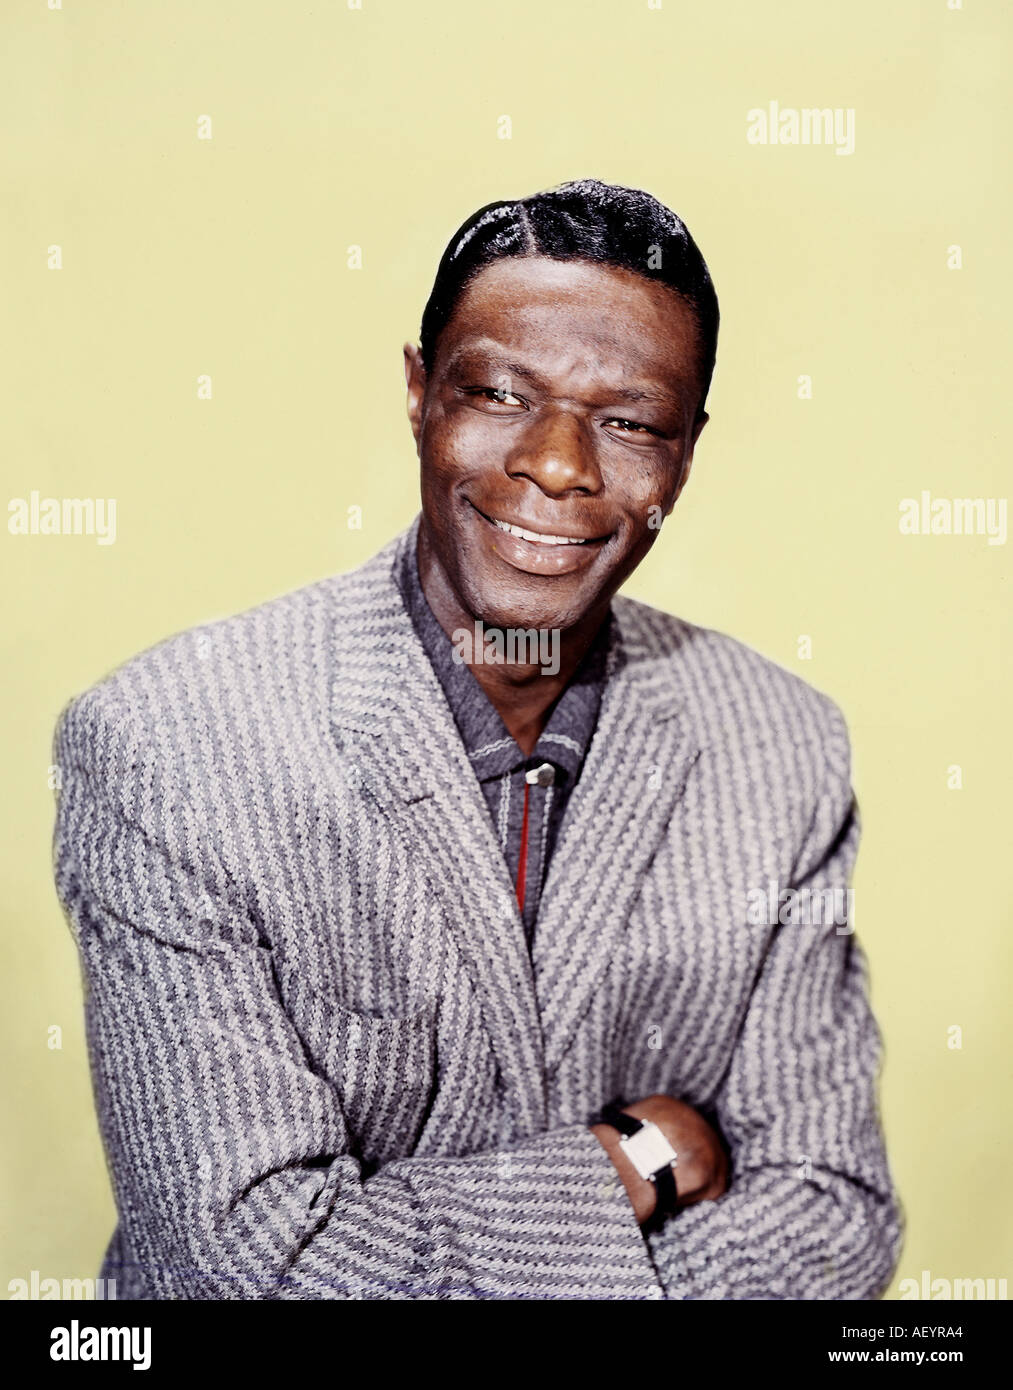 NAT KING COLE (1919-1965) American singer about 1964 - Stock Image